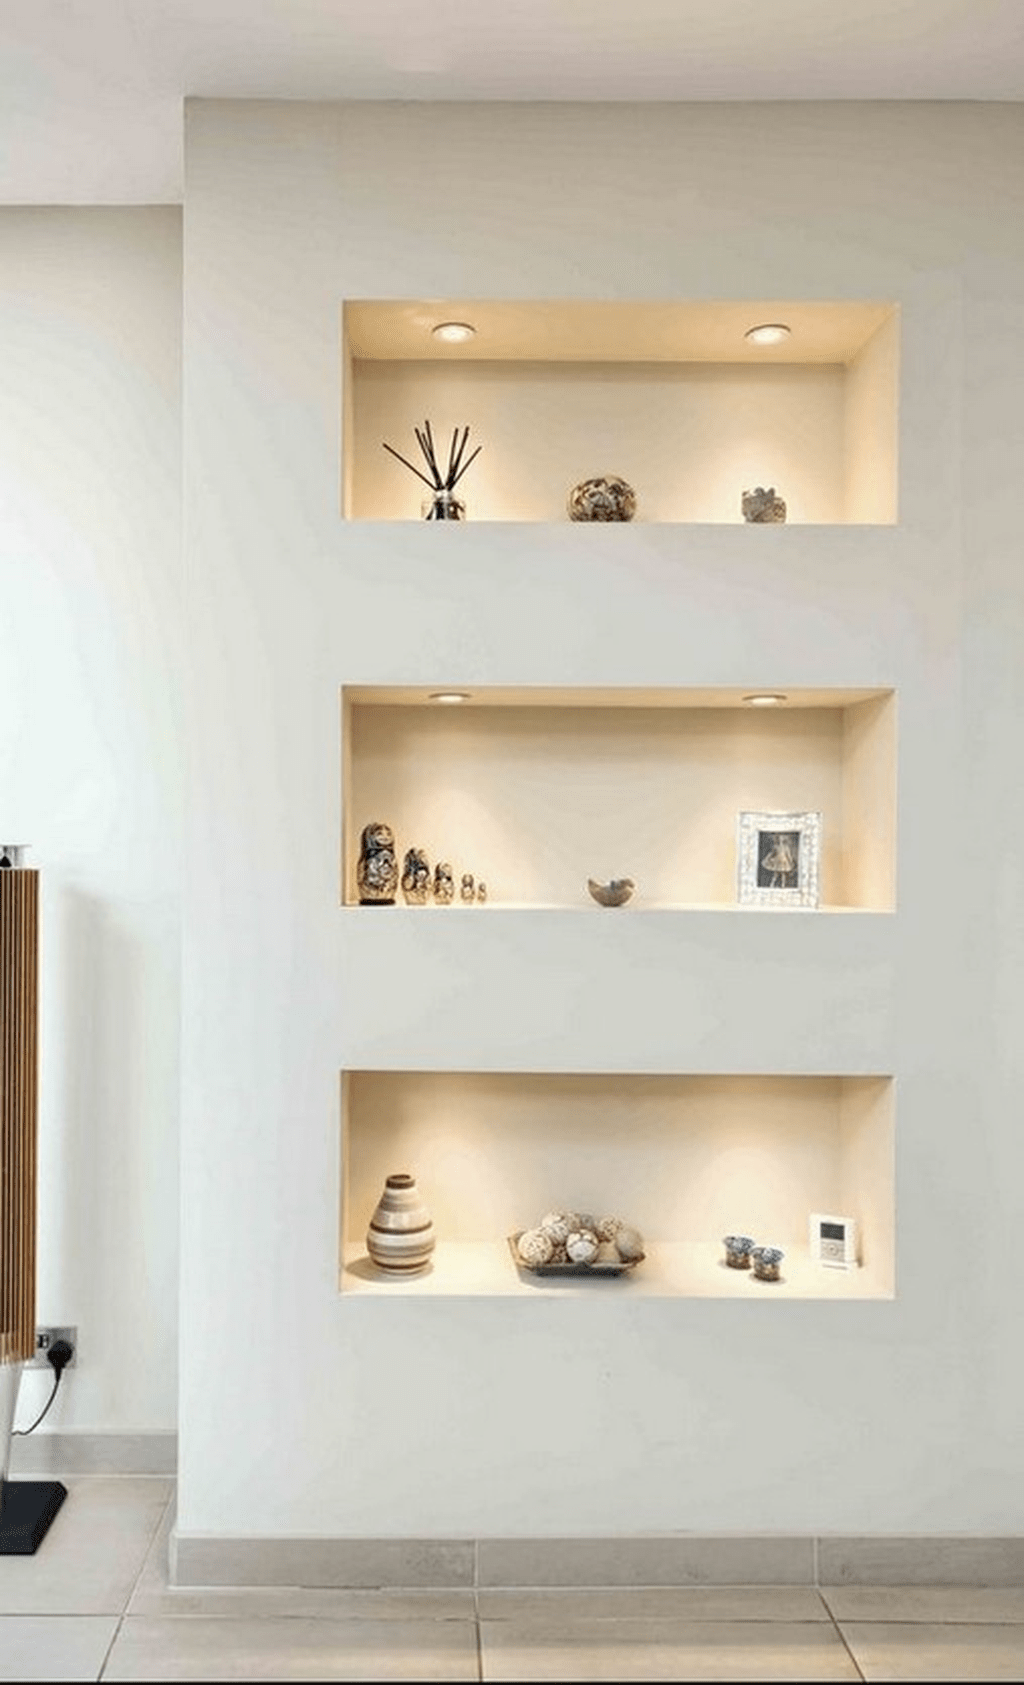 Inspiring Drywall Design Ideas To Beautify Your Interior 25